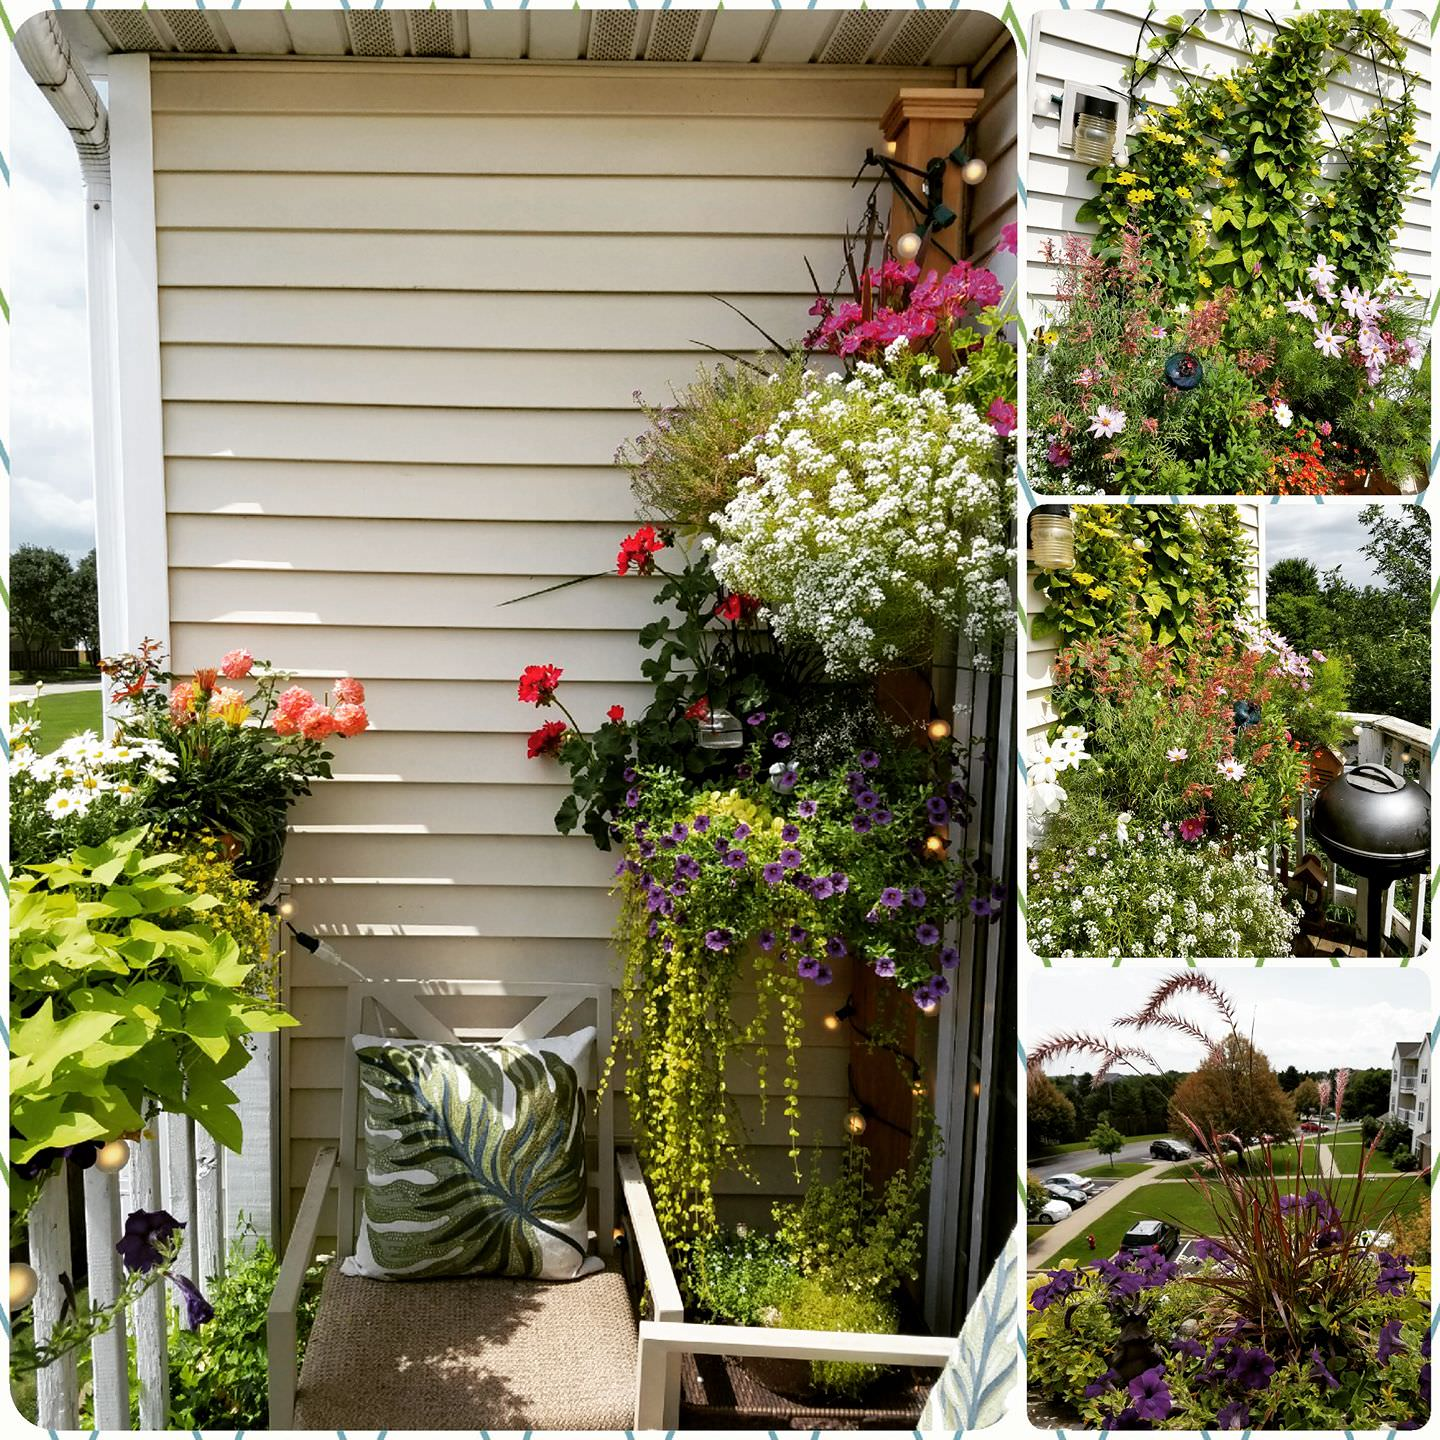 17 Balcony Garden Pictures For Inspiration From Our